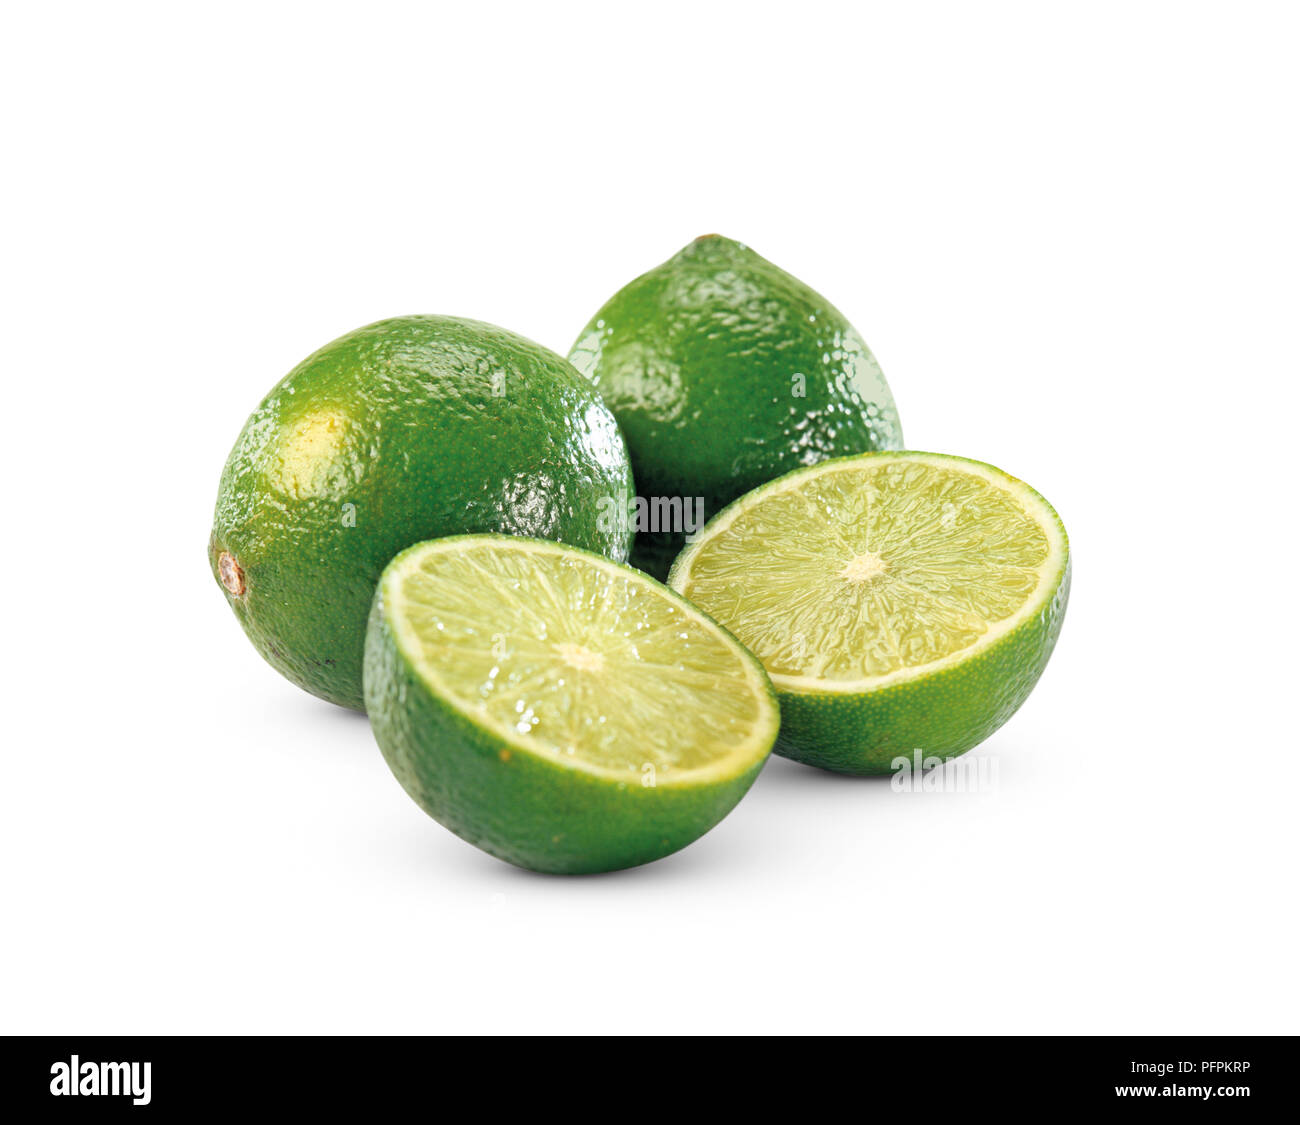 Two whole limes, and two halves, close-up - Stock Image